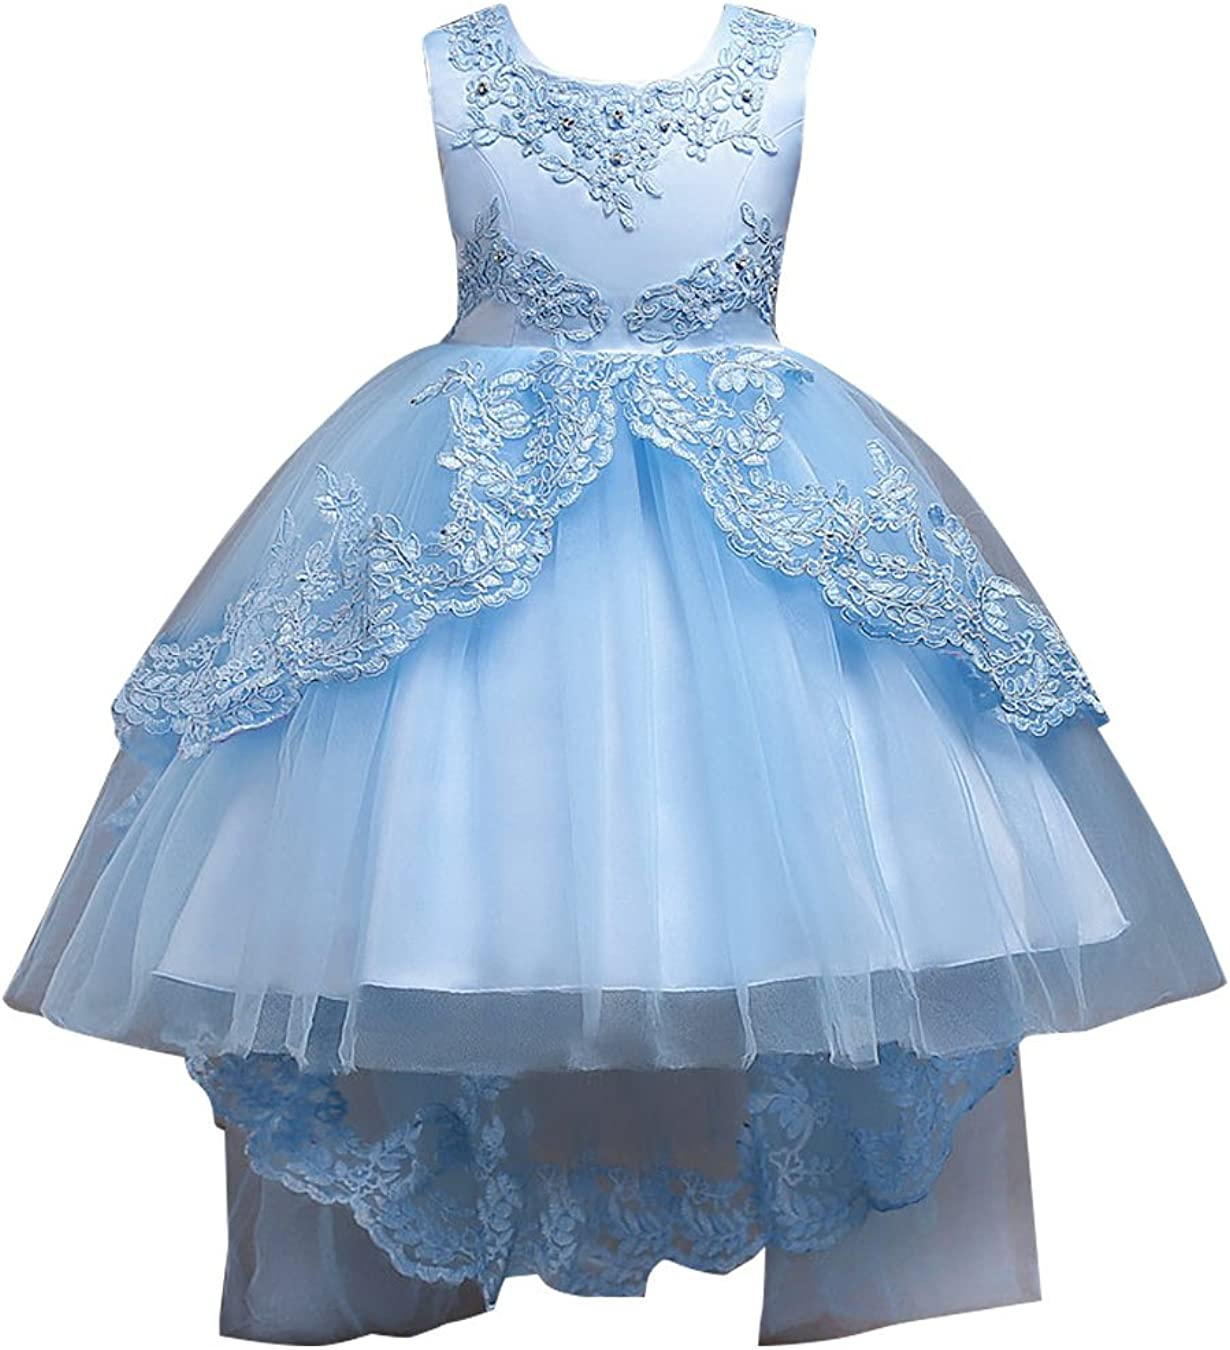 EFOFEI Girls Lace Embroidery Pageant Princess Dress Toddler High Low Tutu Gown Wedding Flower Girl Dresses